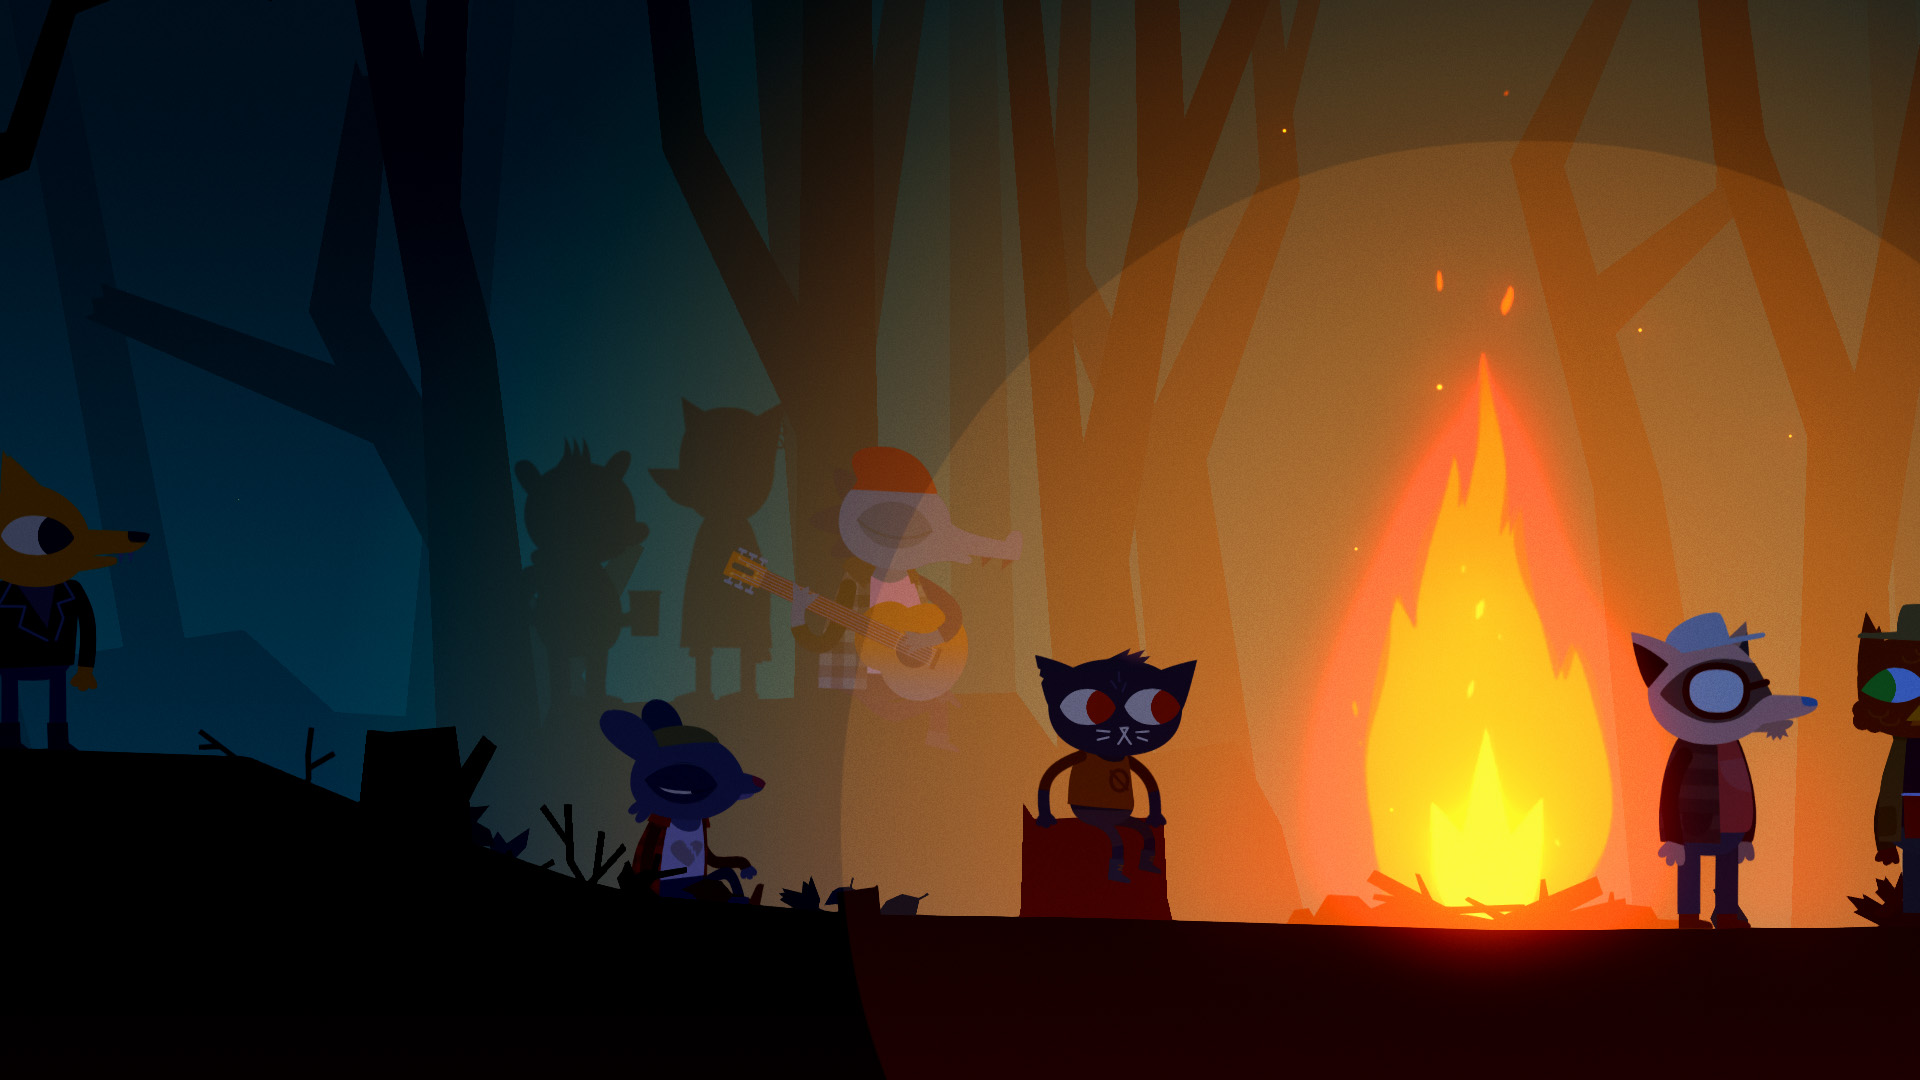 Night In The Woods Wallpaper Christian Forums